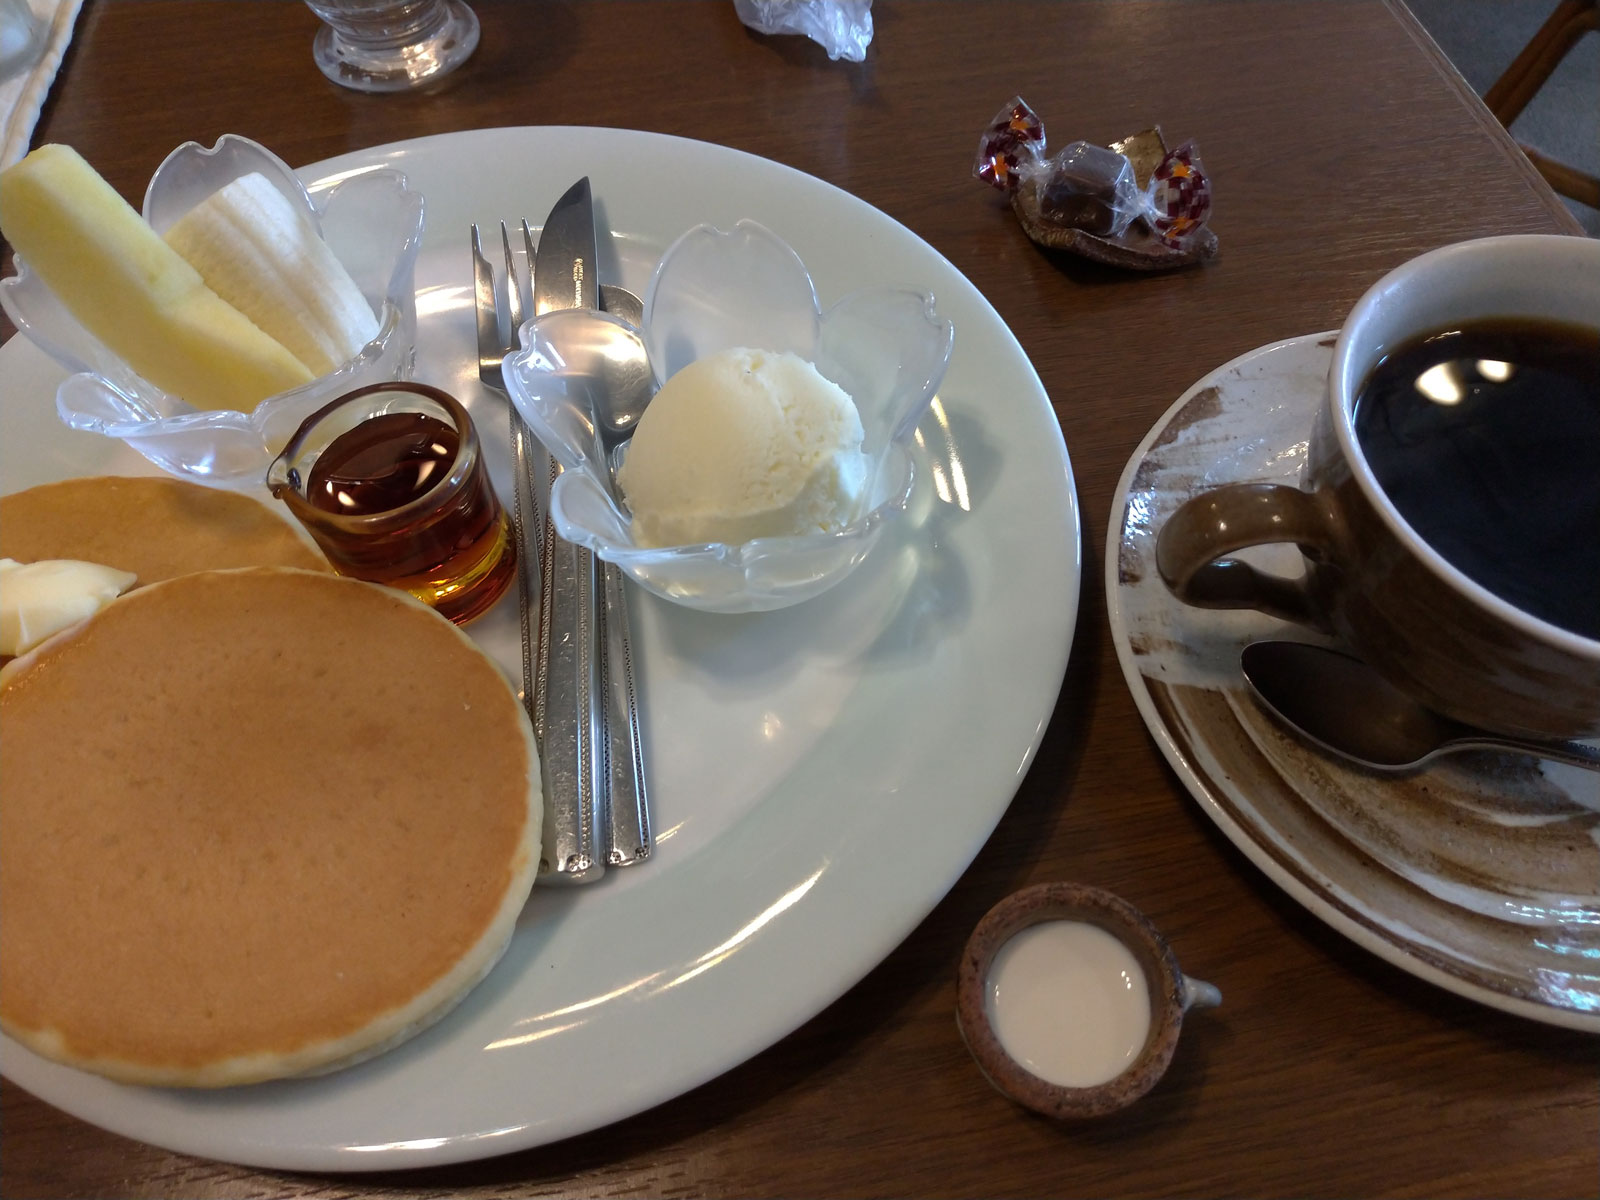 Hotcake and a cup of coffee